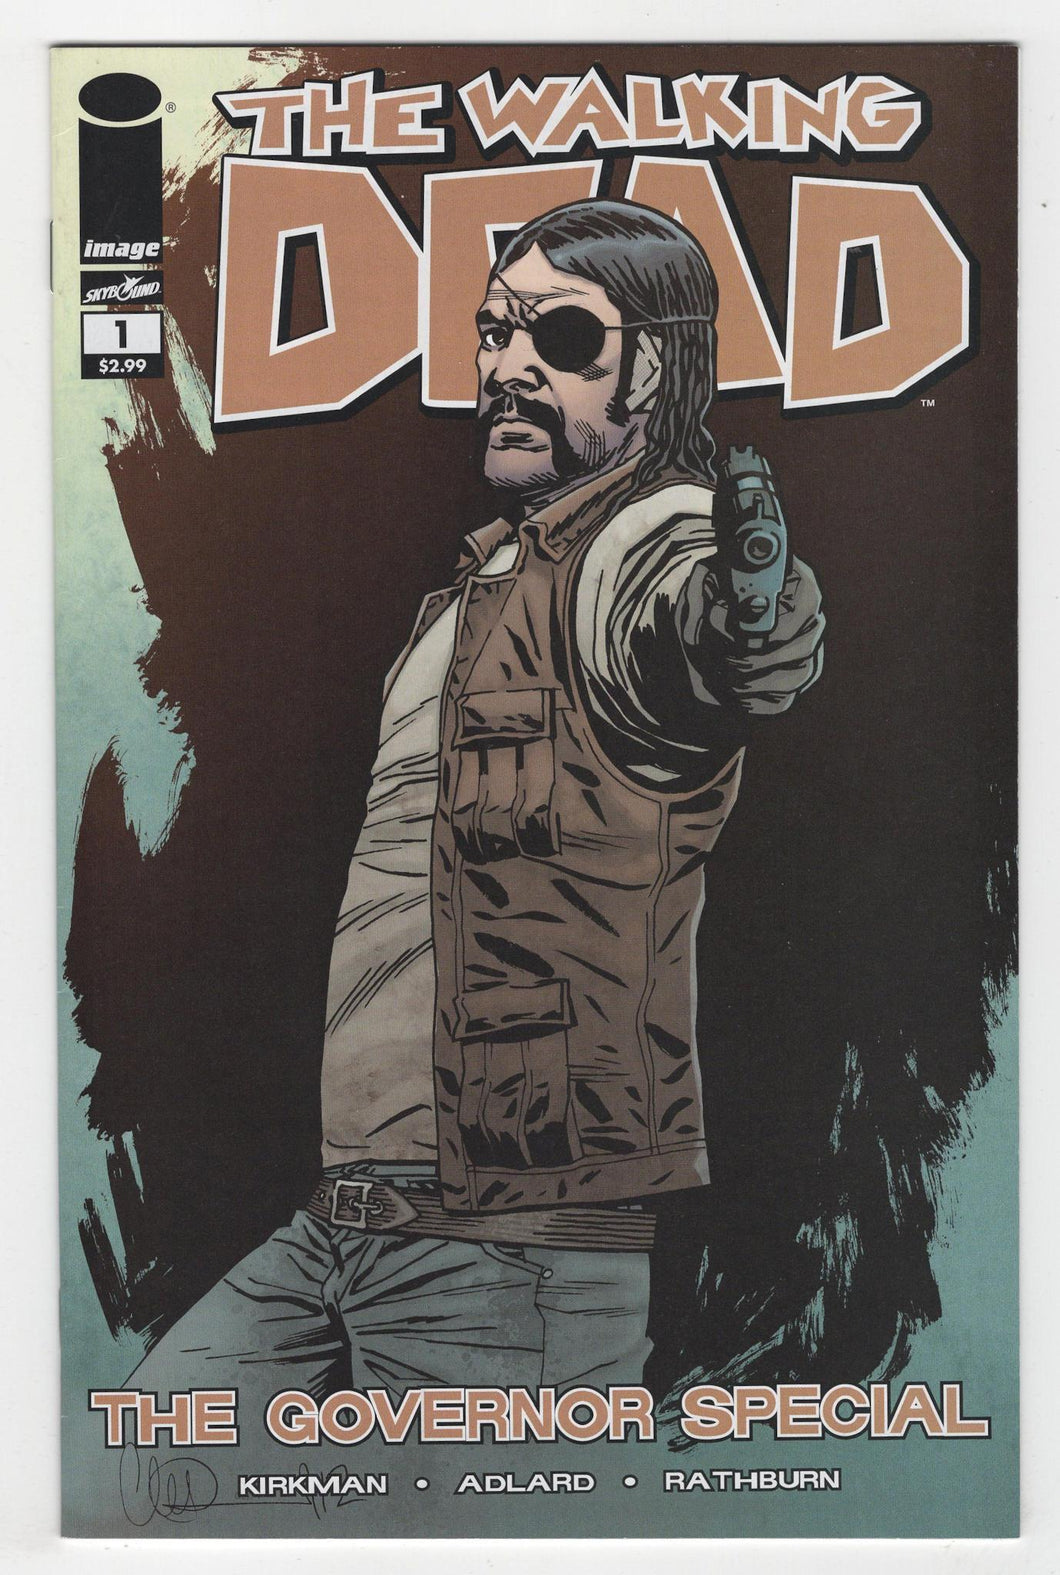 Walking Dead Governor Special #1 Cover Front